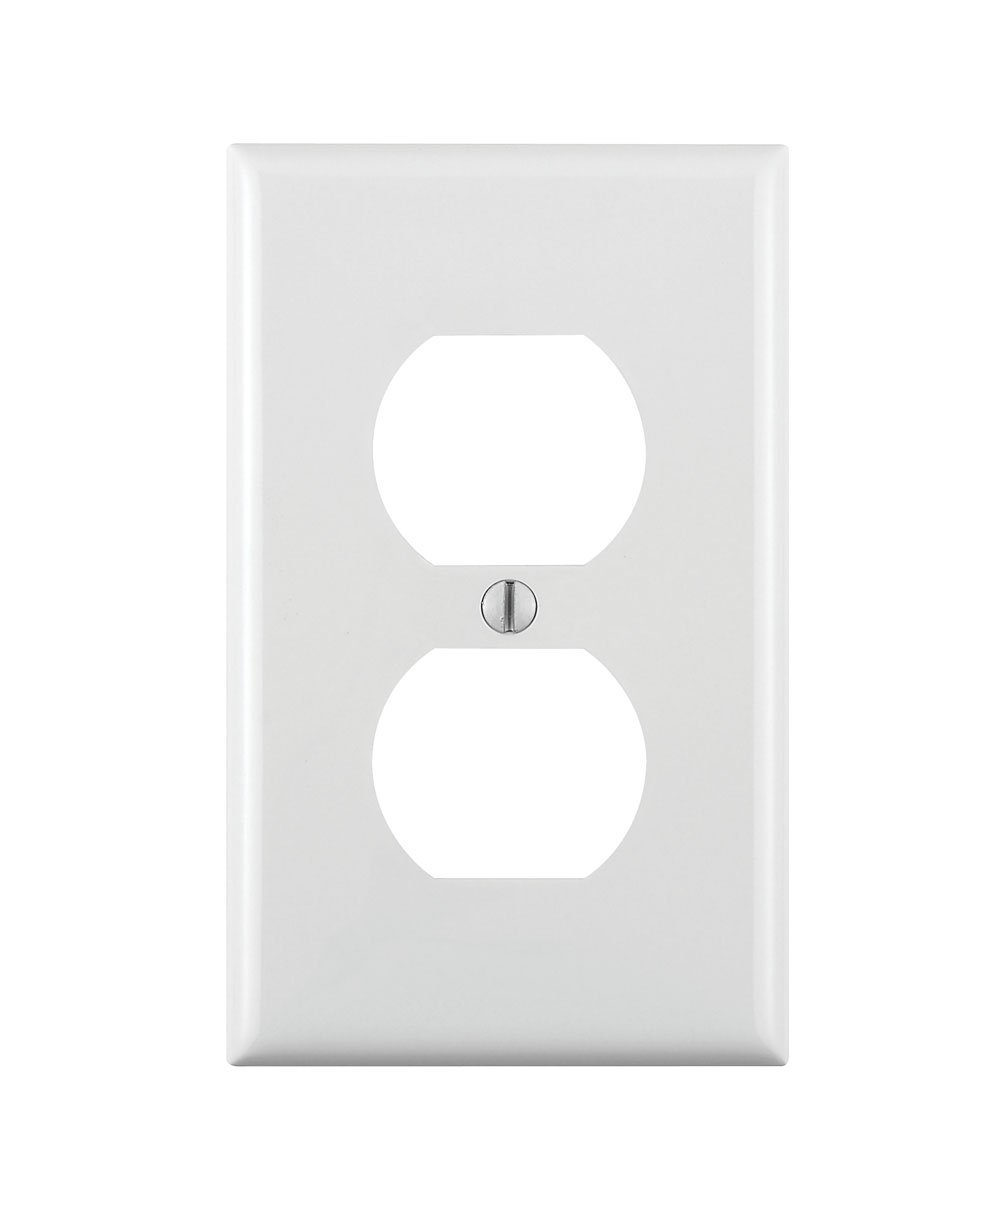 Leviton 80703-W 1-Gang Duplex Device Receptacle Wallplate, Standard Size, Thermoplastic Nylon, Device Mount, 20-Pack, White